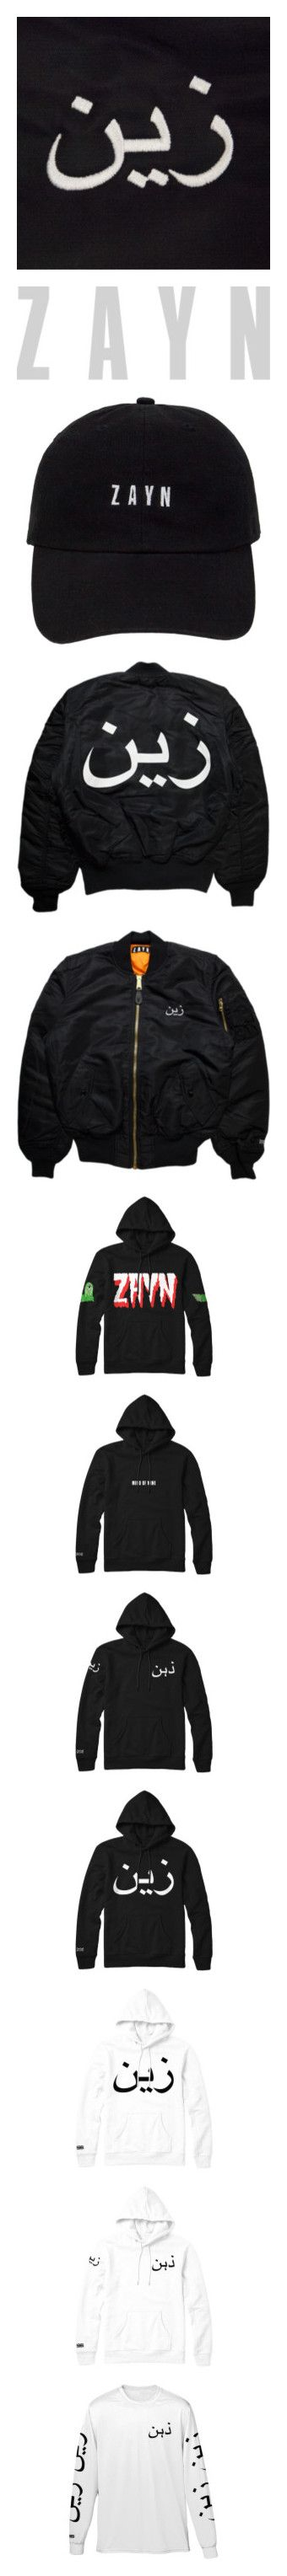 """Zayn Malik Store"" by thewexknd ❤ liked on Polyvore featuring zayn, merch, outerwear, jackets, nylon jacket, oversized military jacket, field jacket, army jacket, british flag jacket and tops"